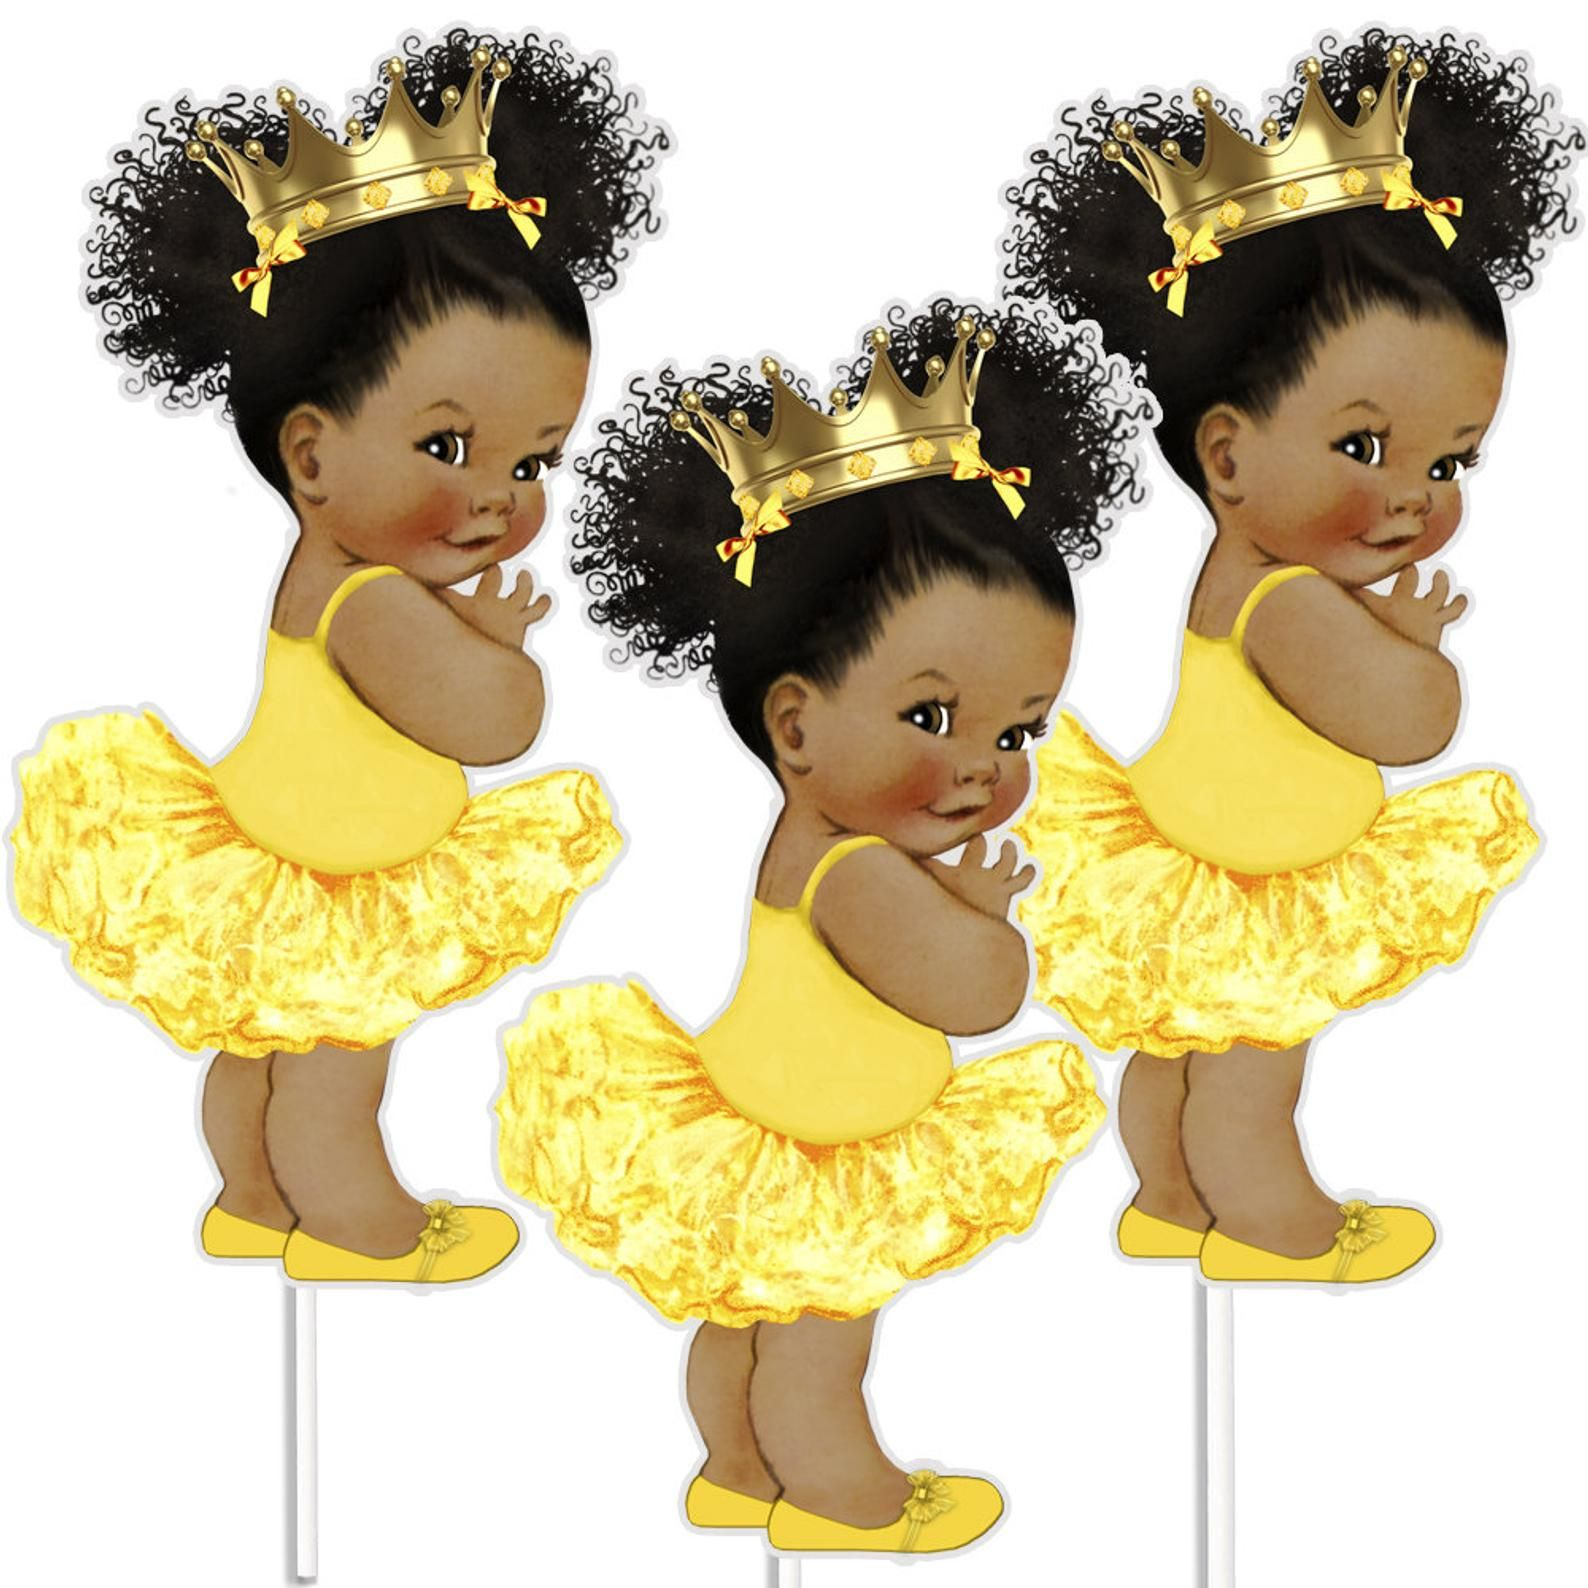 3 Yellow Gold Princess Centerpieces African American Baby Shower Decor In 2021 Black Baby Art Princess Centerpieces African American Babies